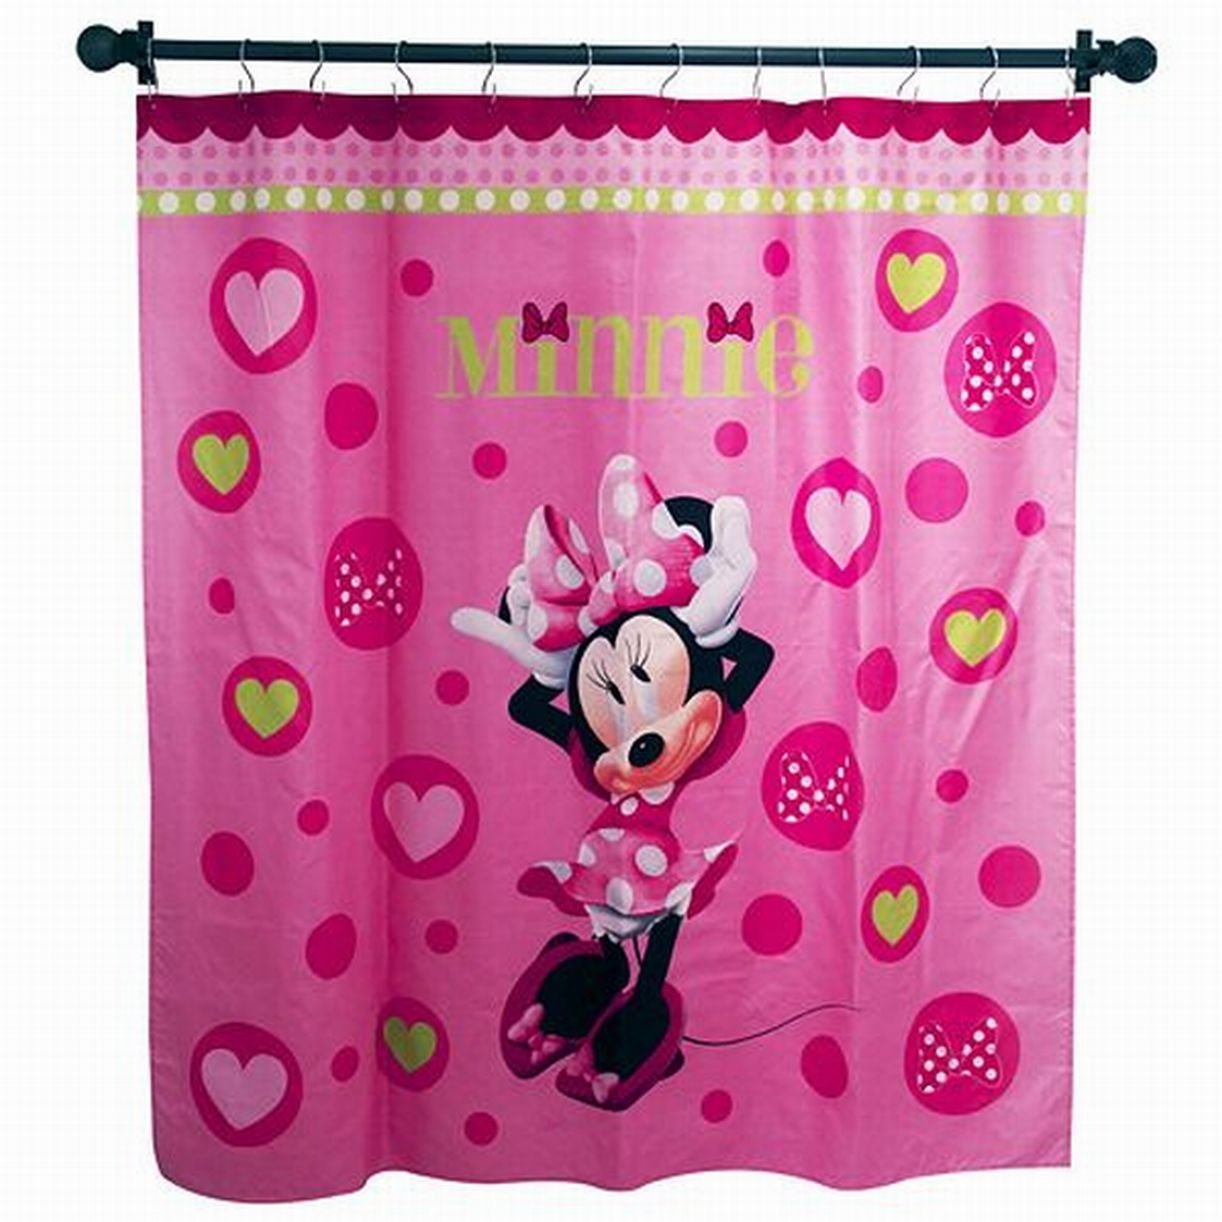 Get Quotations Disney Minnie Mouse Pink Hearts Microfiber Shower Curtain Kids Bath